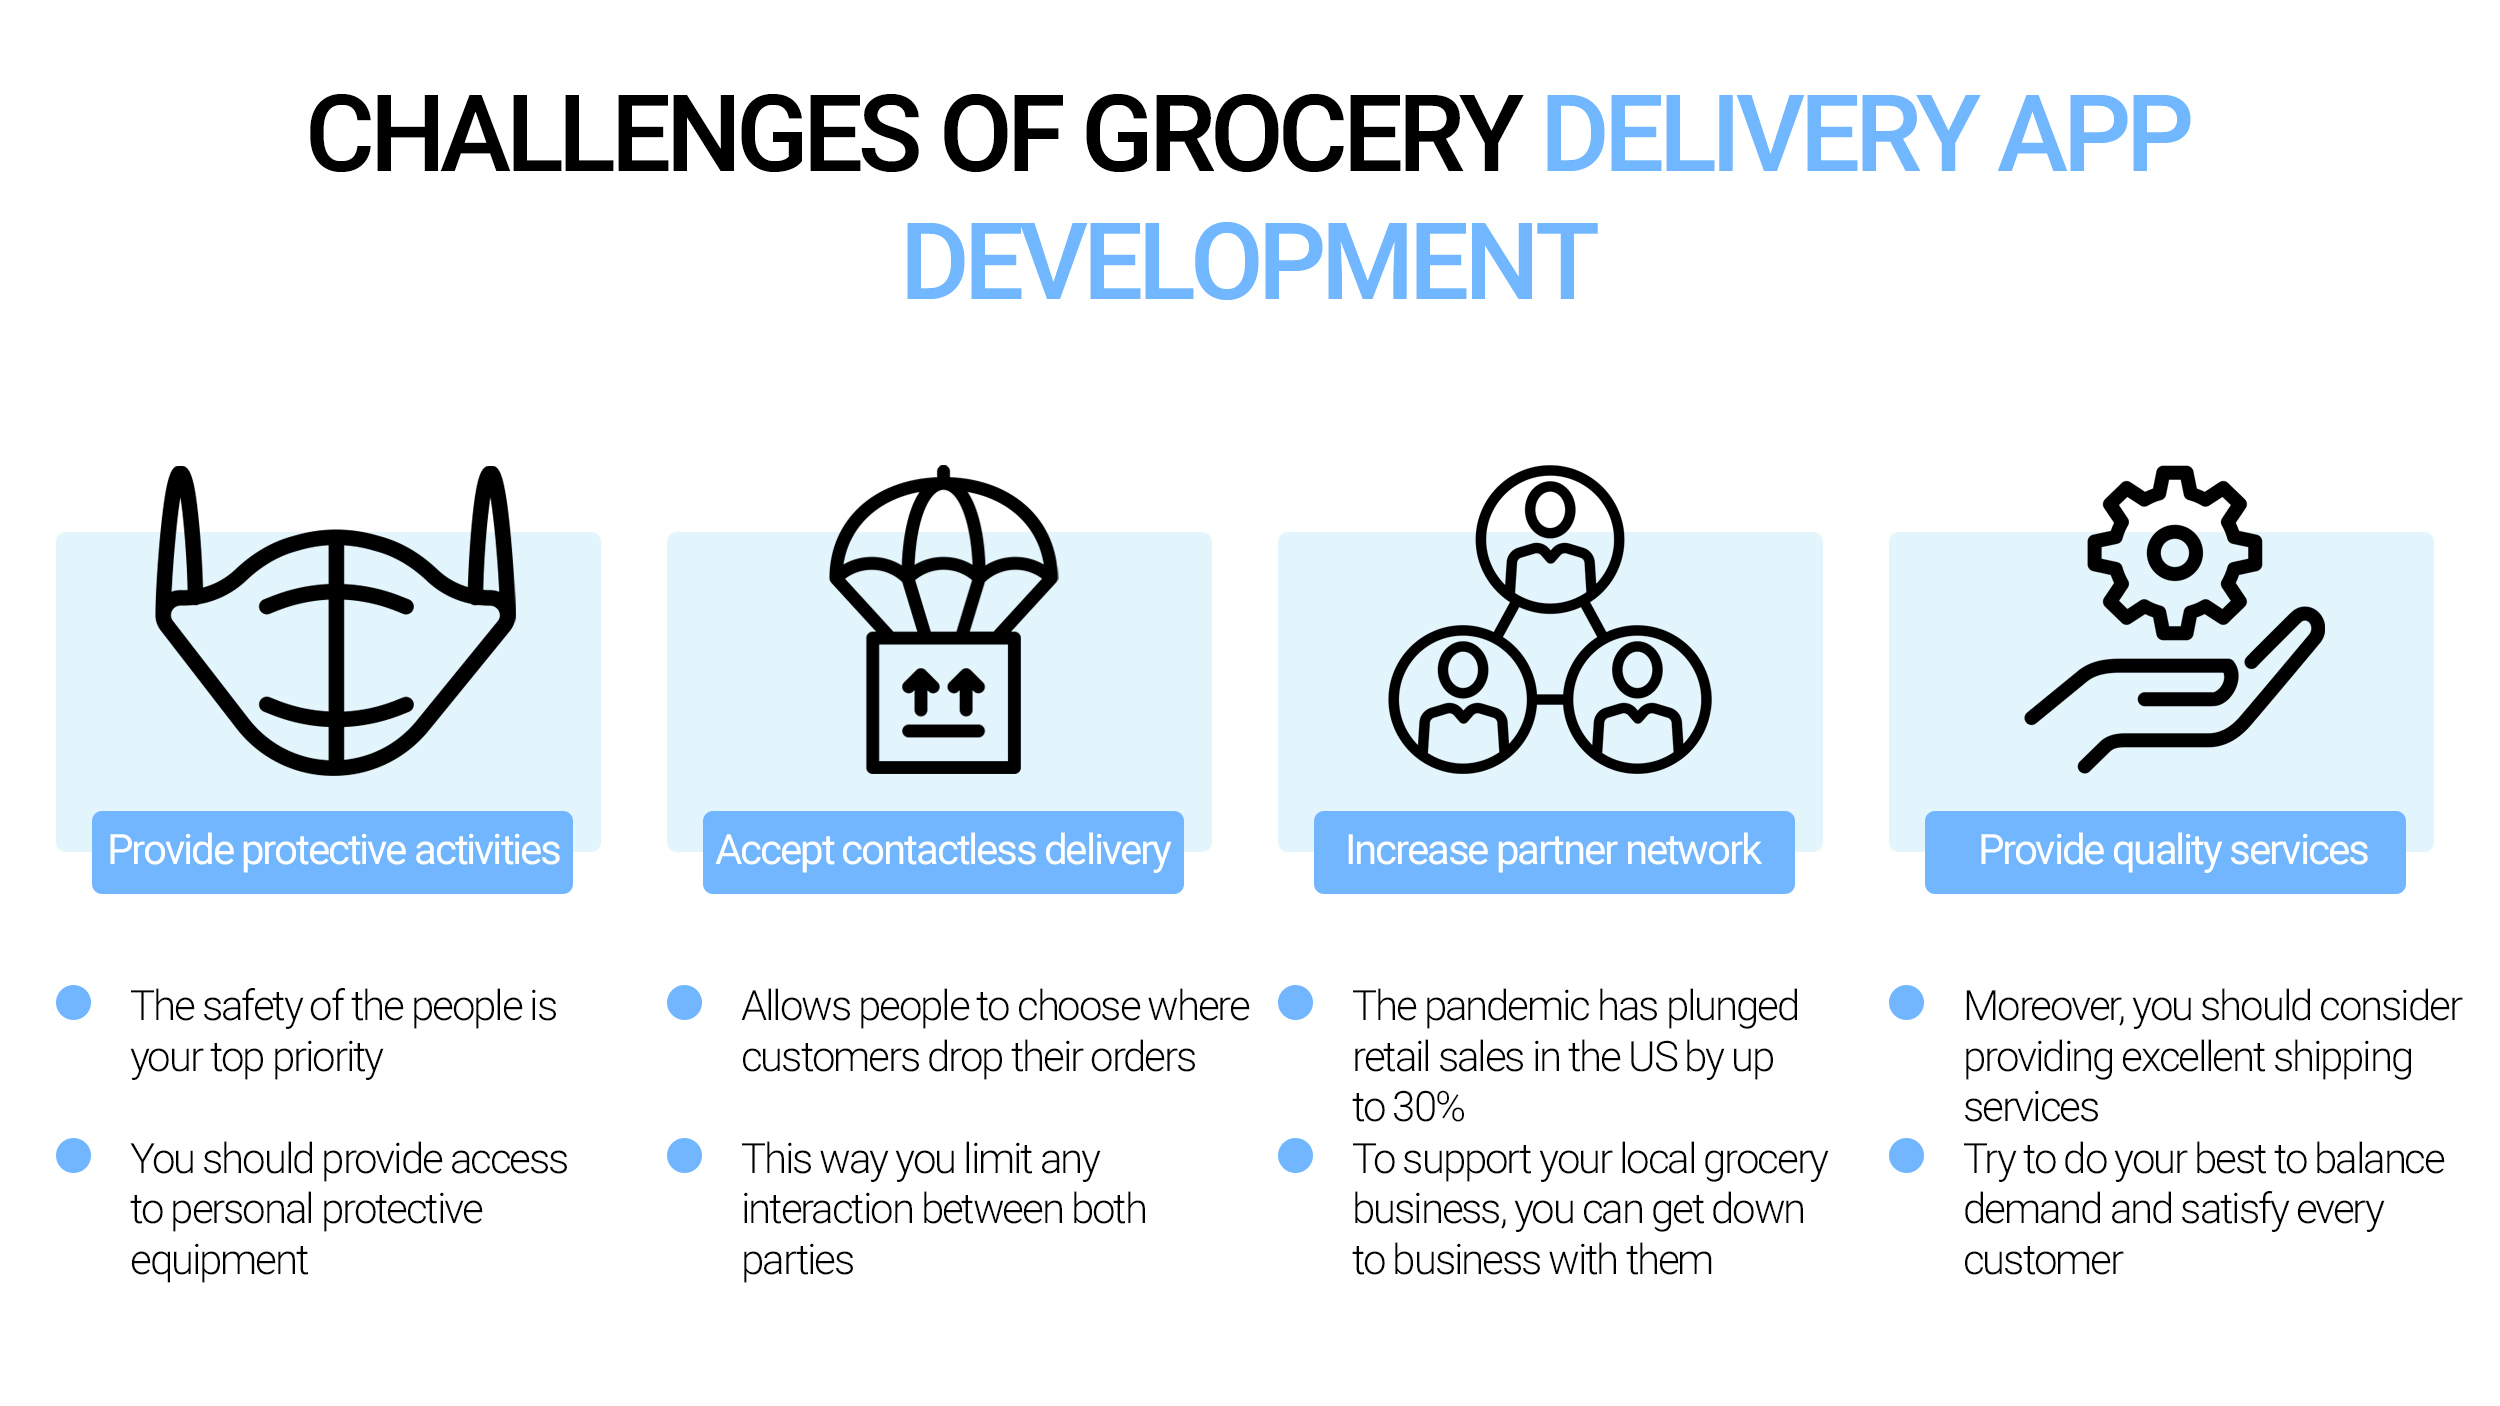 Challenges of grocery delivery app development